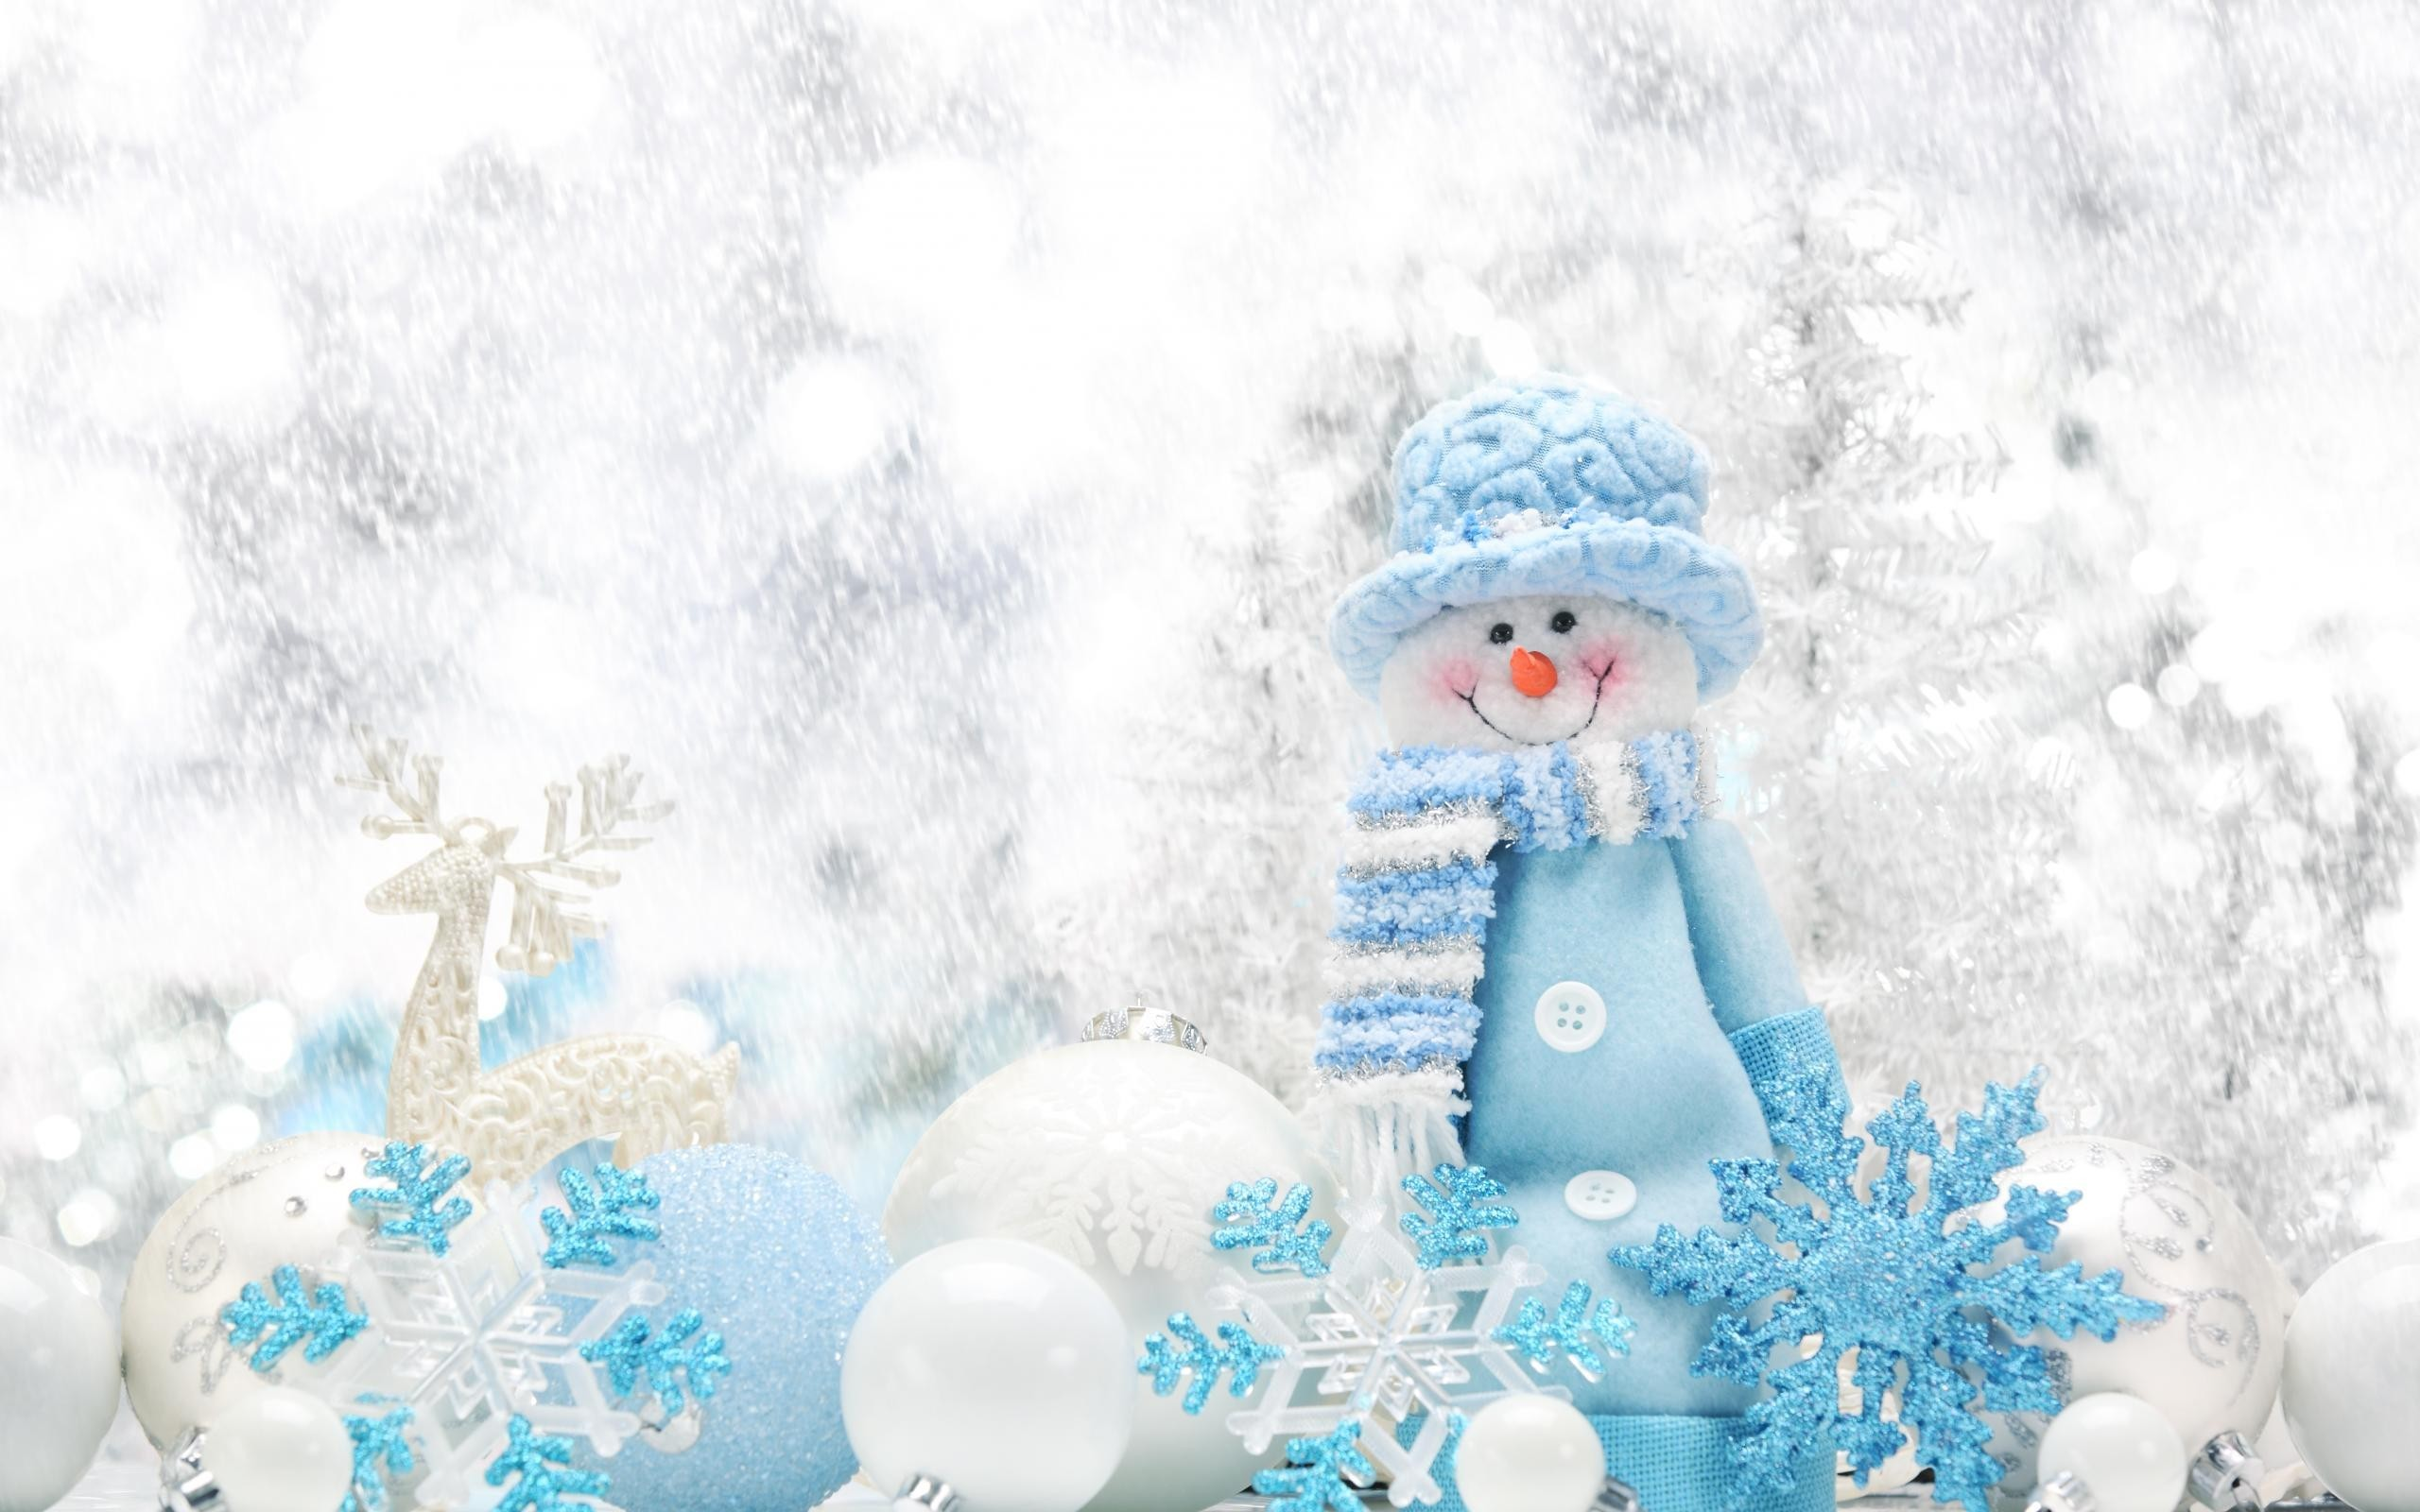 Snowman Iphone Wallpaper Christmas Picturesque Wintry | www ...